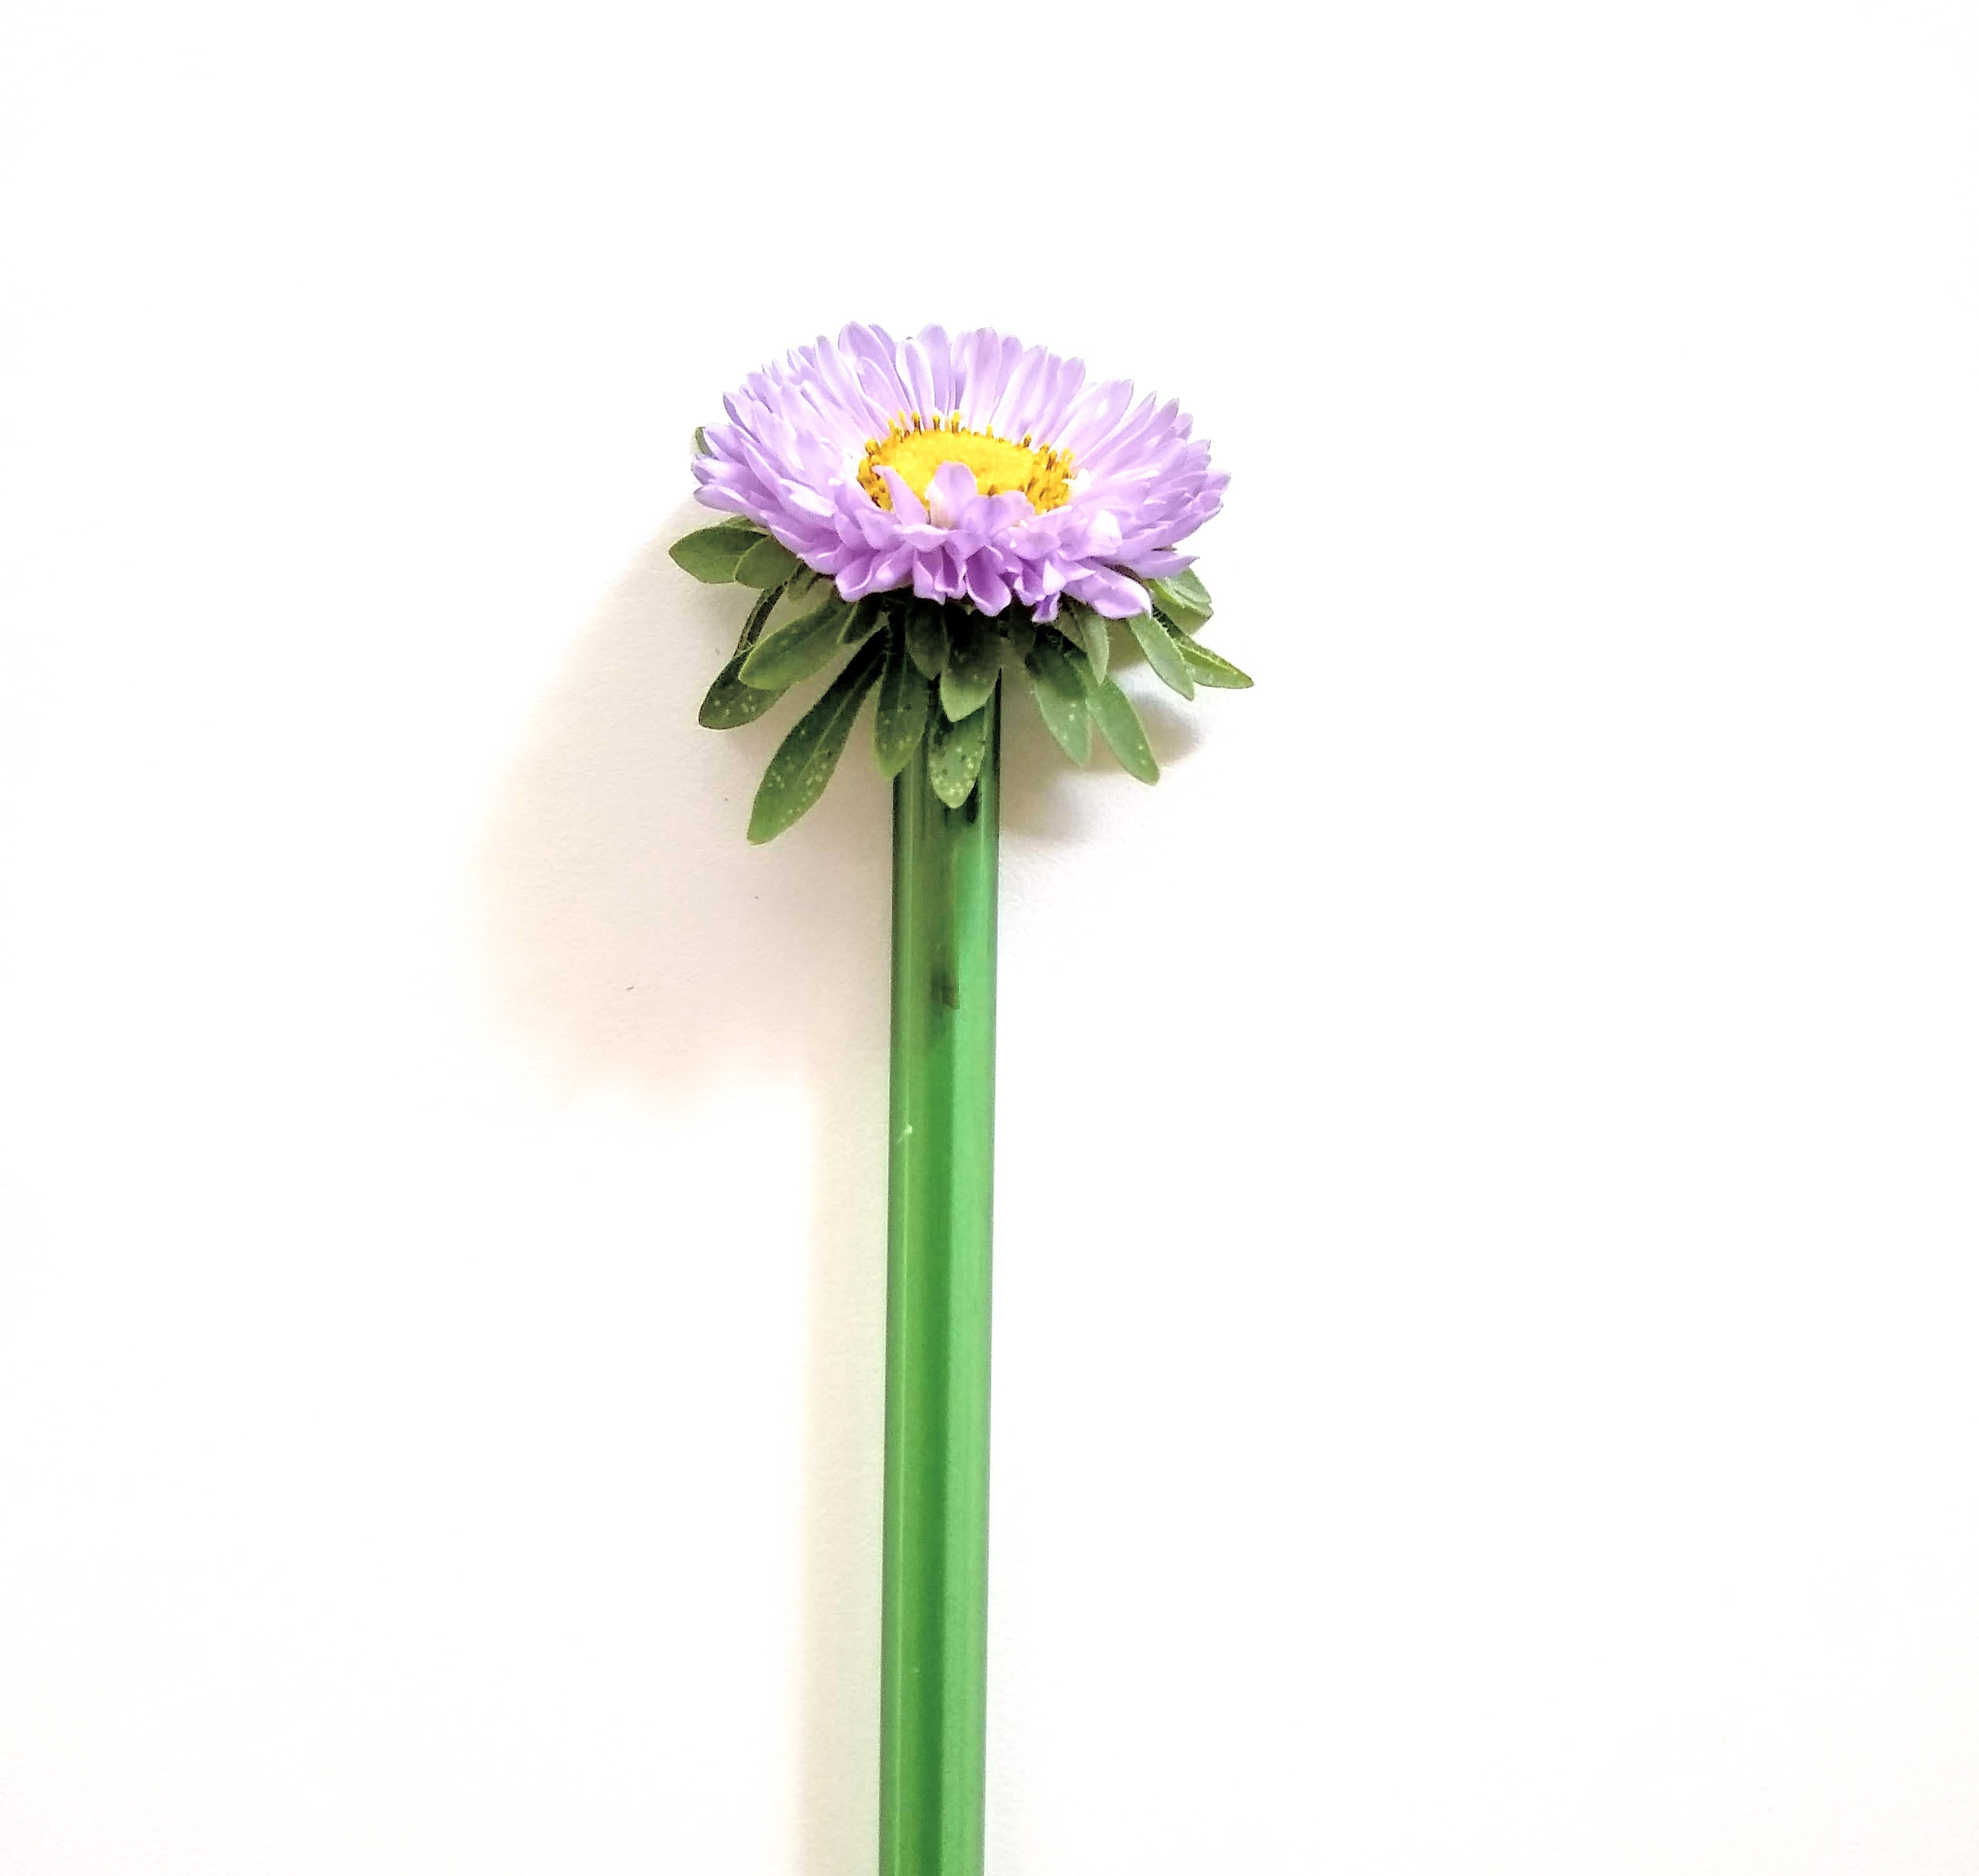 green ToMA glass straw with fresh flower slipped inside as gift at a garden party